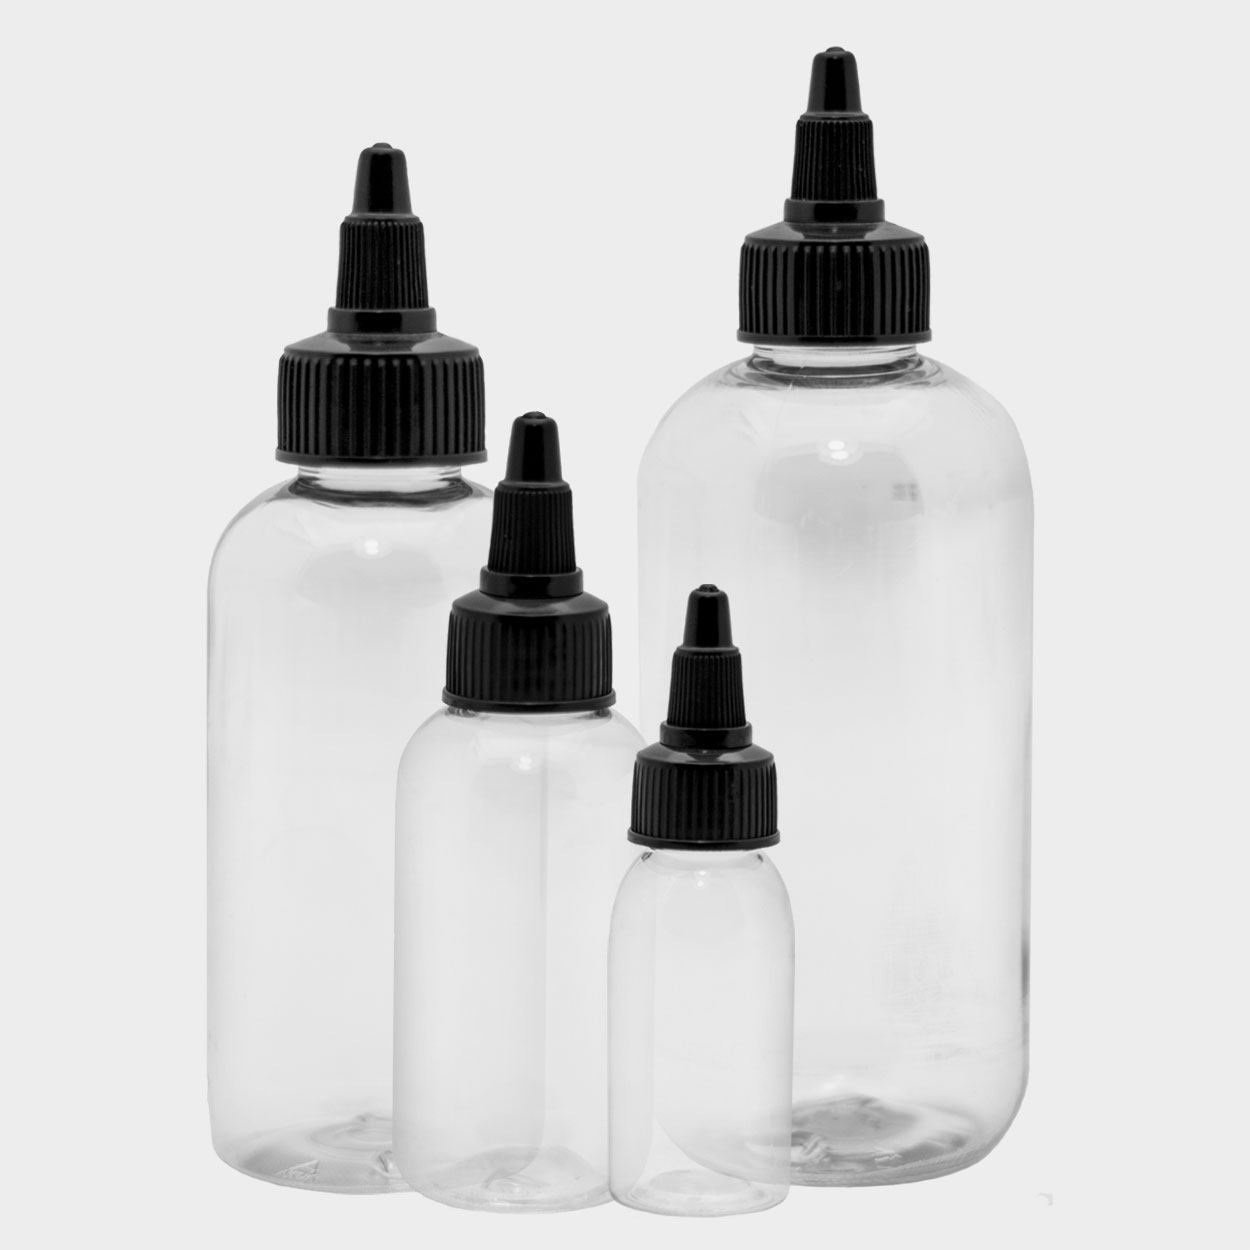 Empty Bottles - Boston Round - with liner and Black Twist Top - Tattoo Supply - Killer Silver